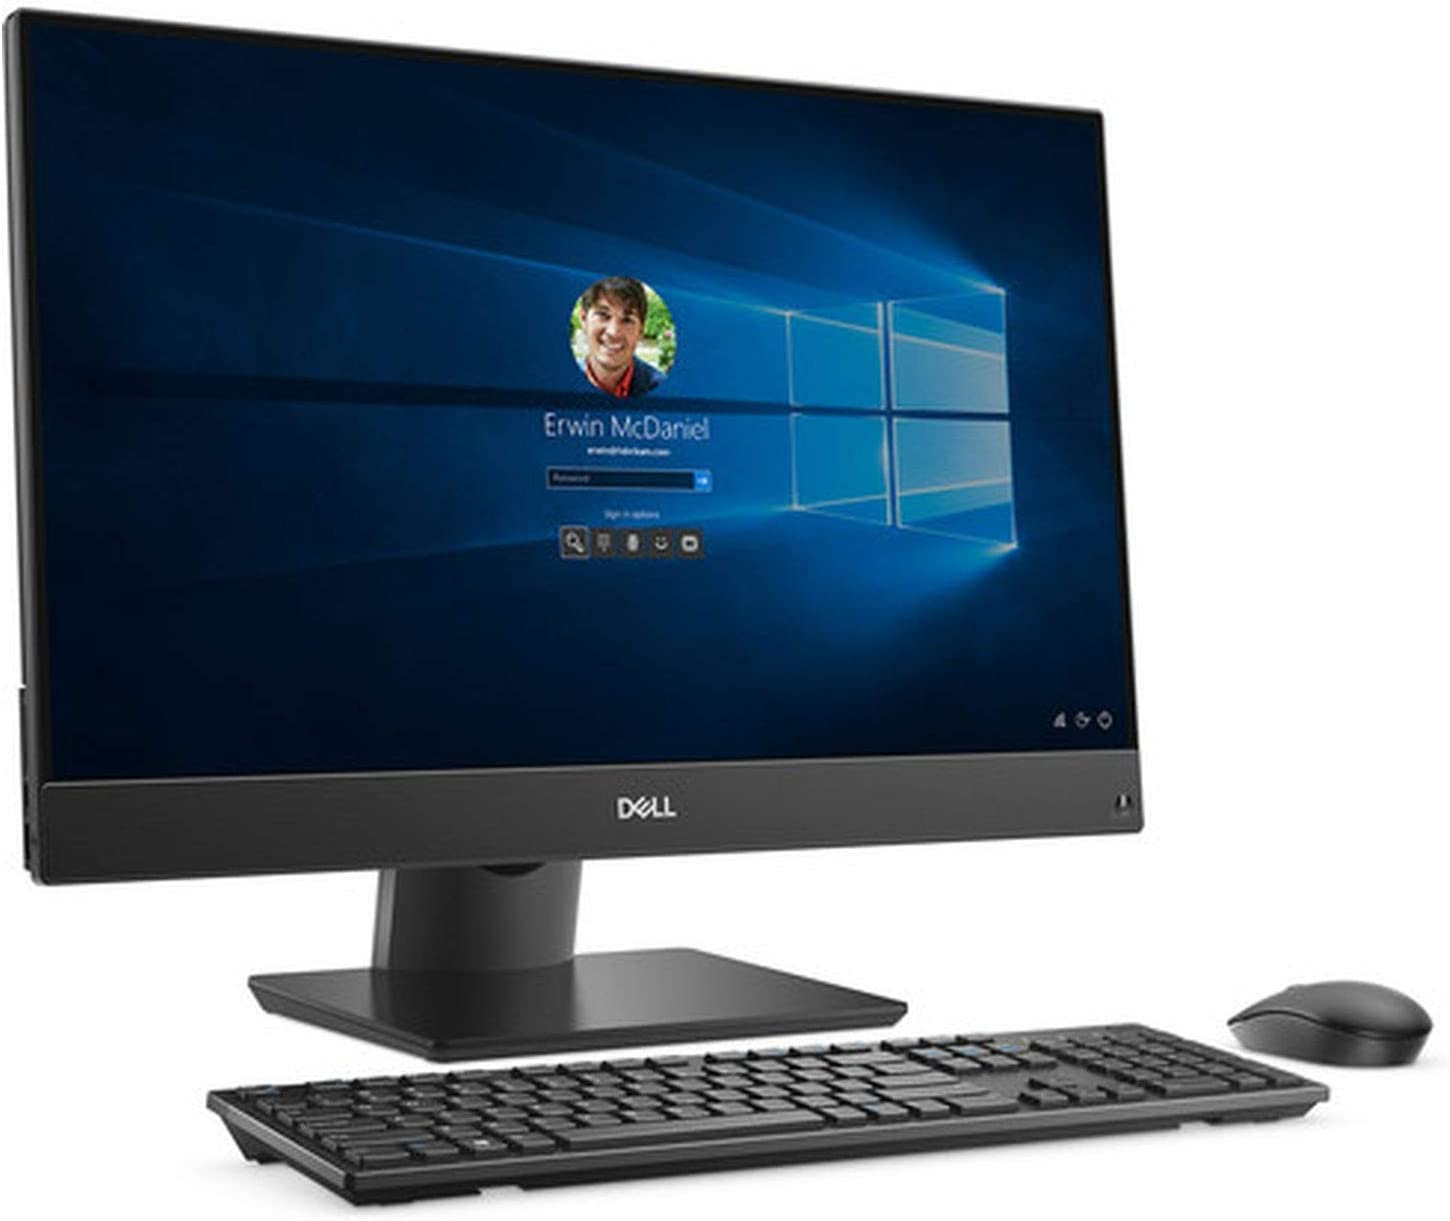 Dell OptiPlex 7470 All-in-One Computer - Intel Core i7-9700 - 8GB RAM - 1TB HDD - 23.8